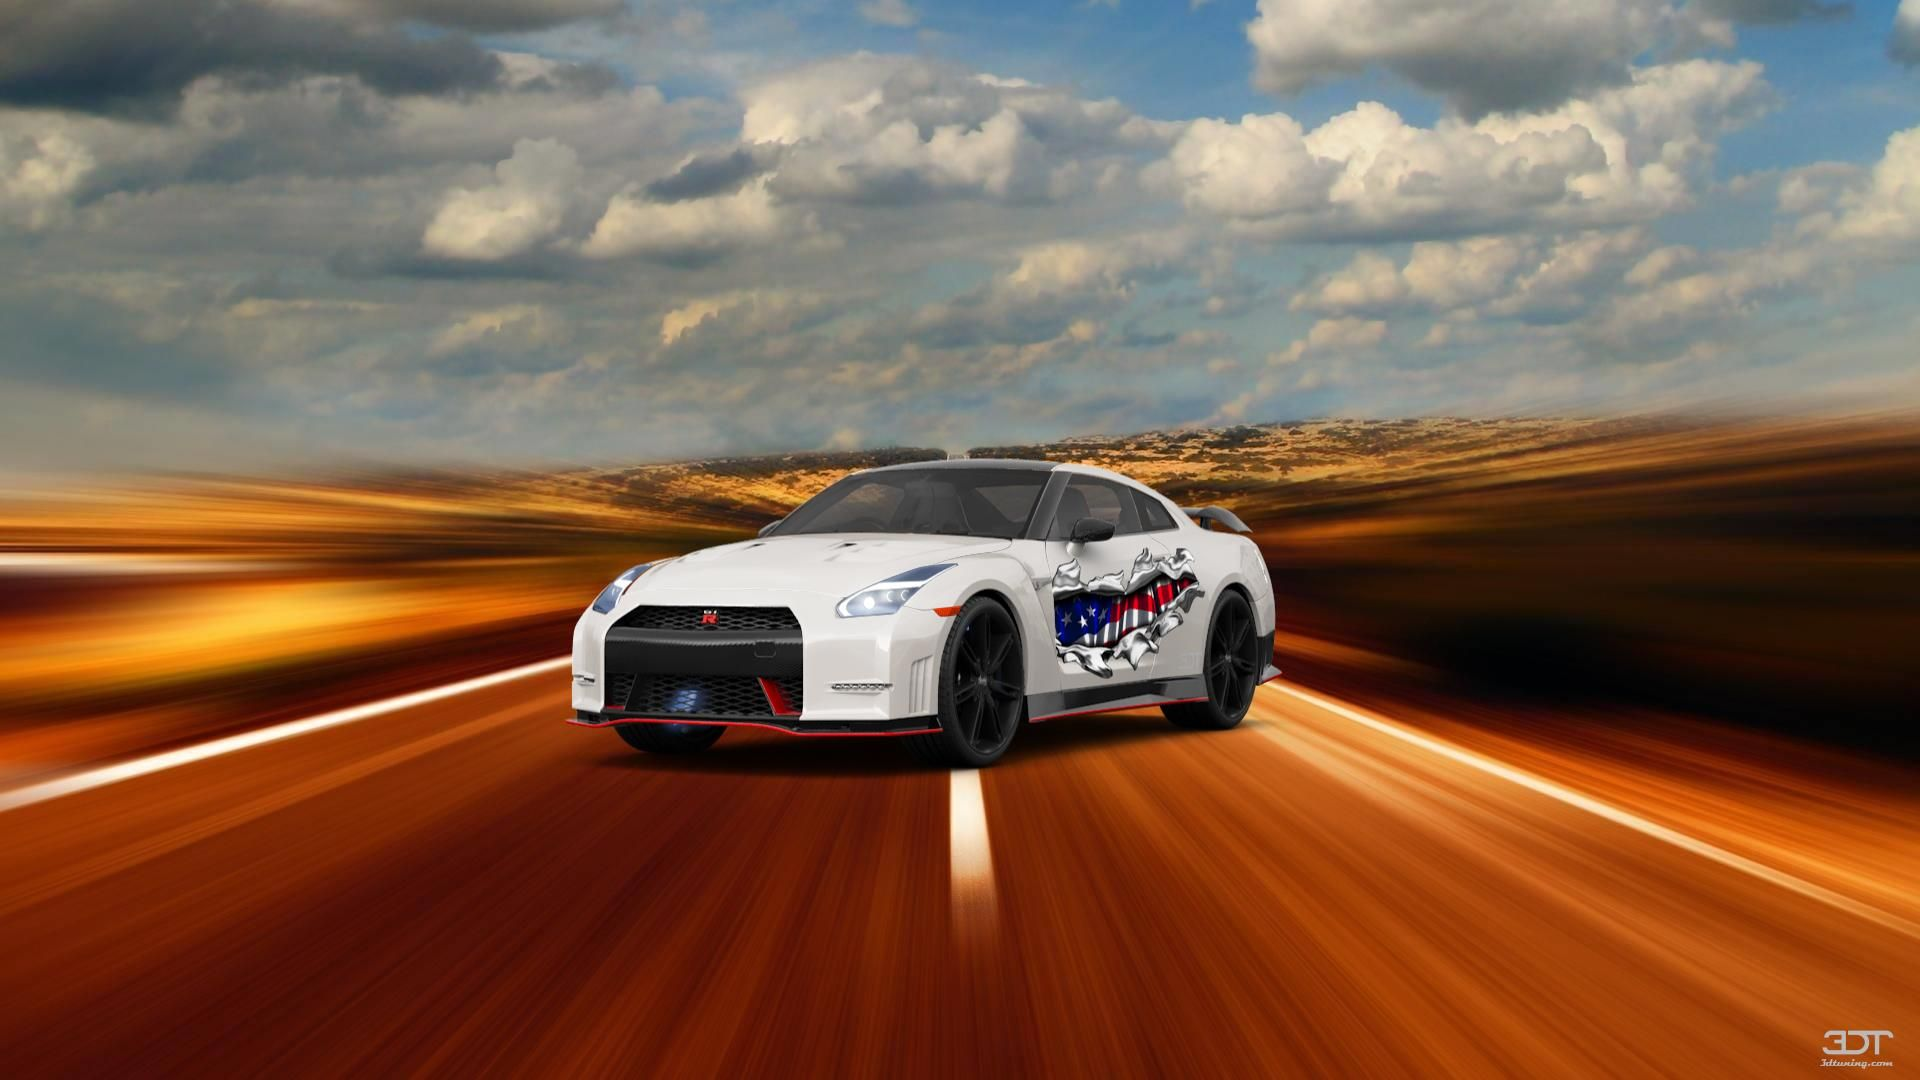 Checkout my tuning Nissan GT R 2110 at 3DTuning 3dtuning tuning